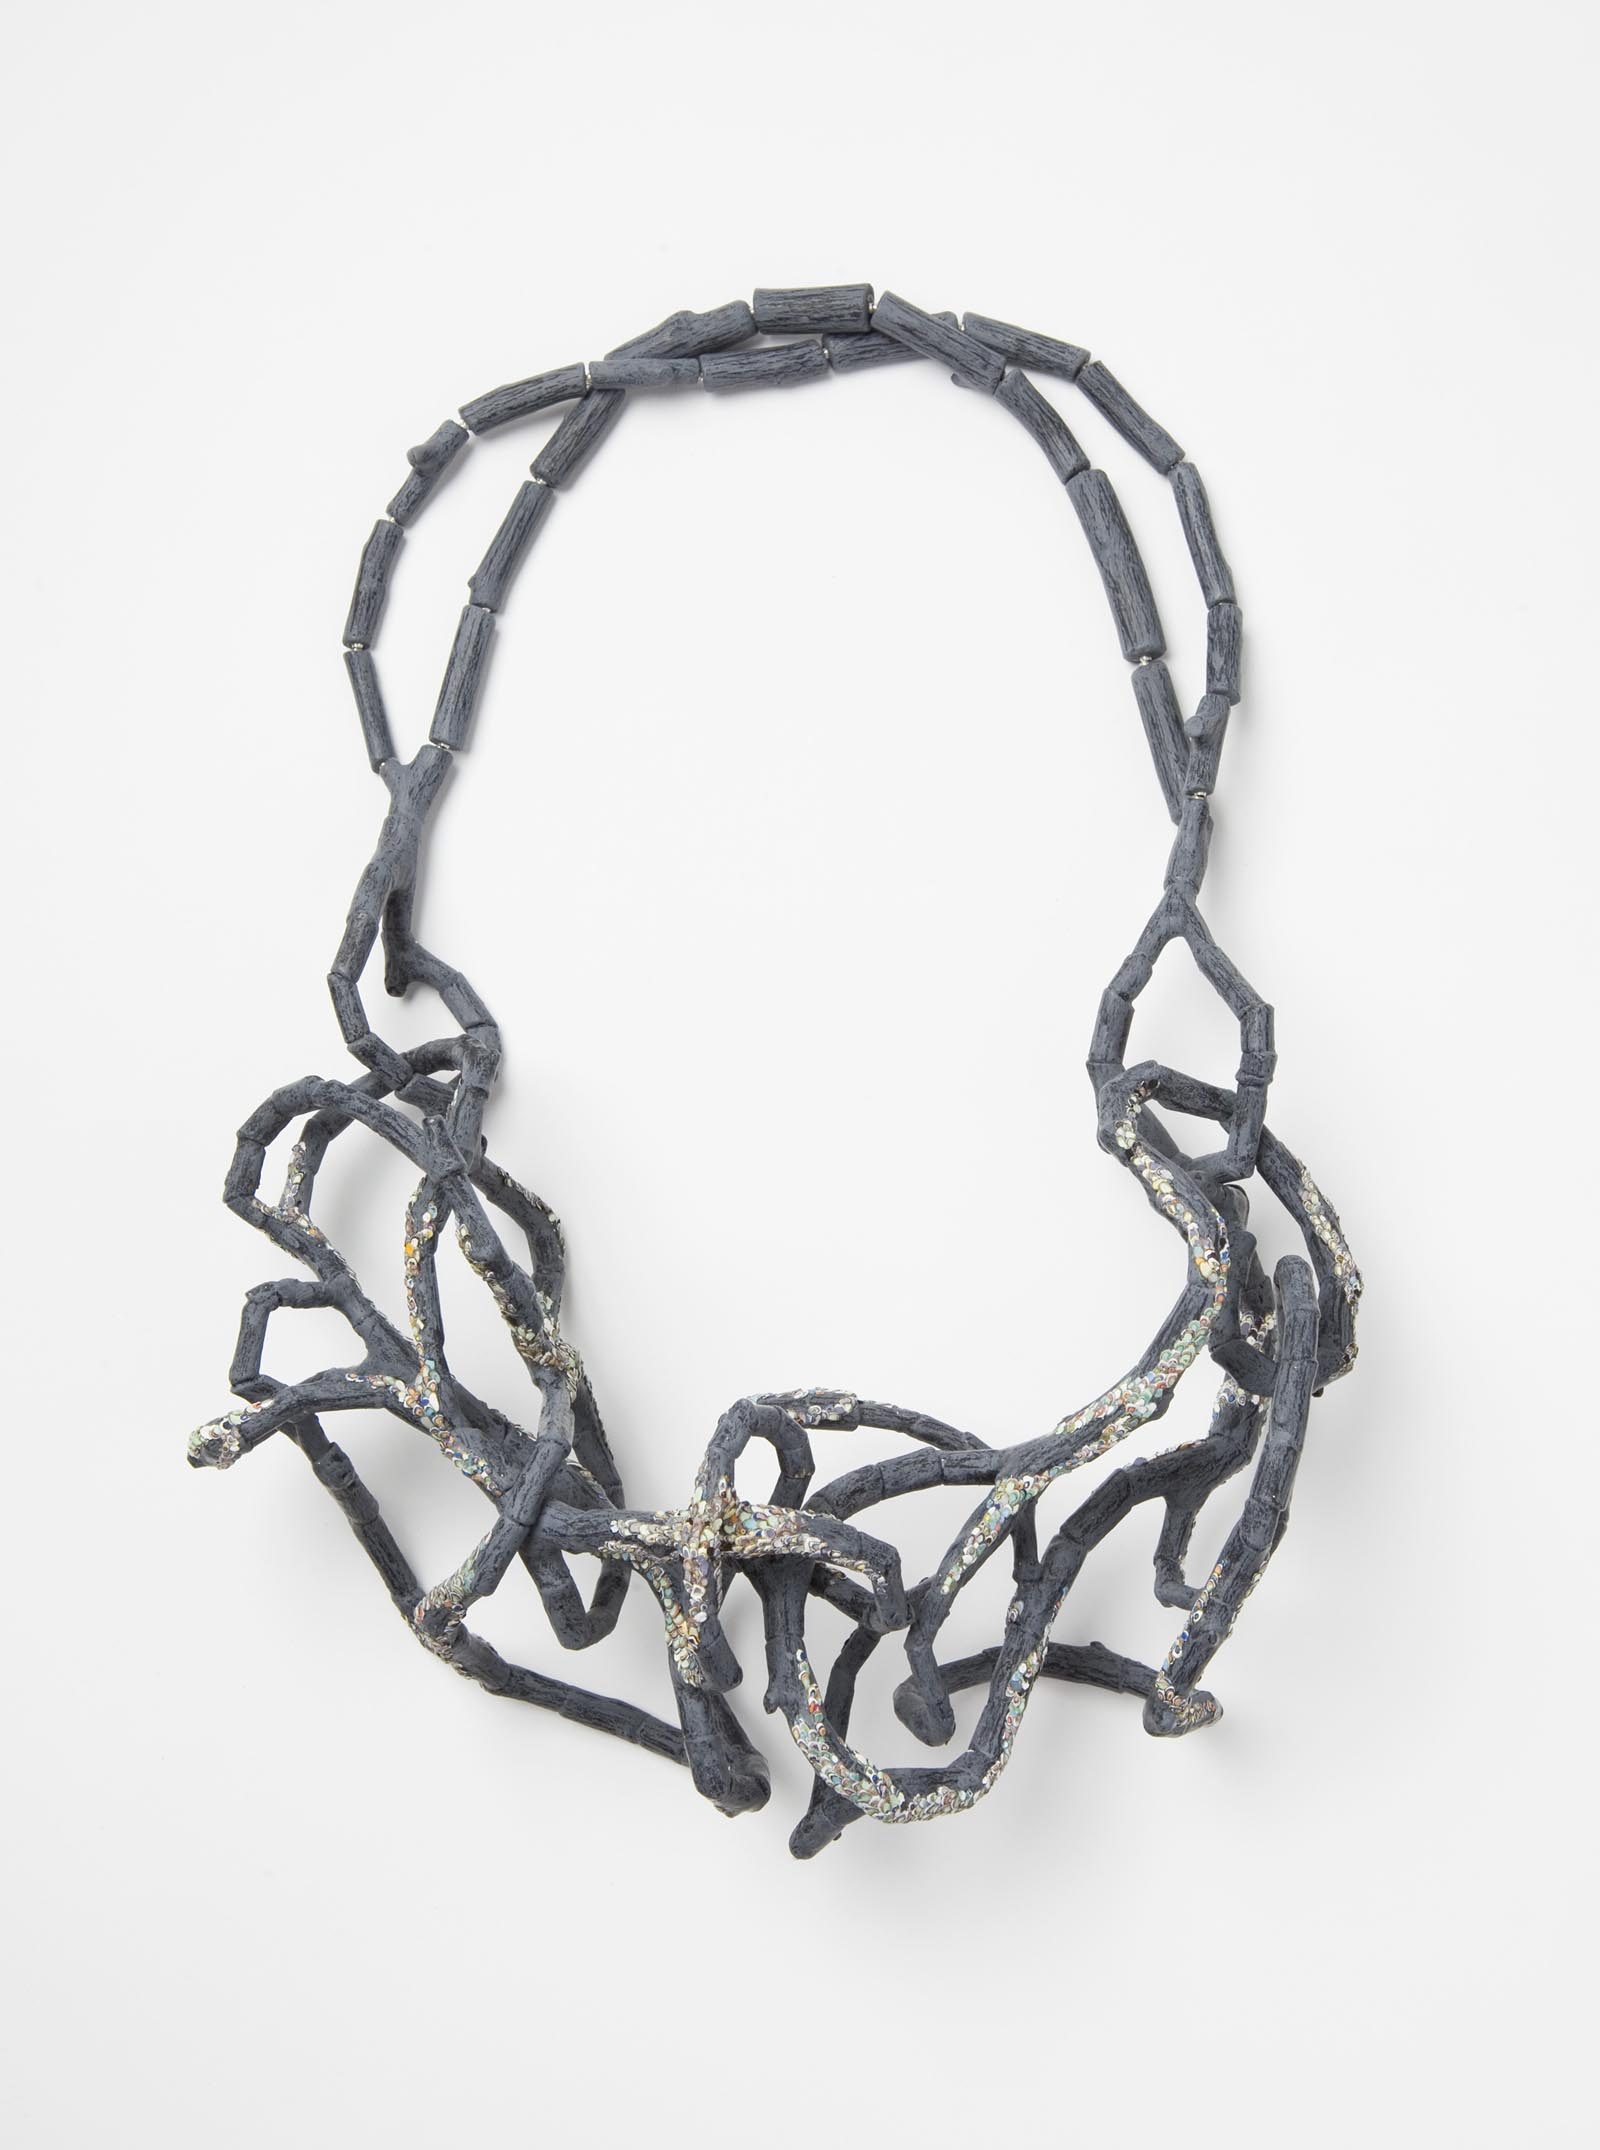 """Confused Branches 3"" I Necklace, 2015 I Wood, graffiti, silver, steel wire, paint I Photo: Mirei Takeuchi"